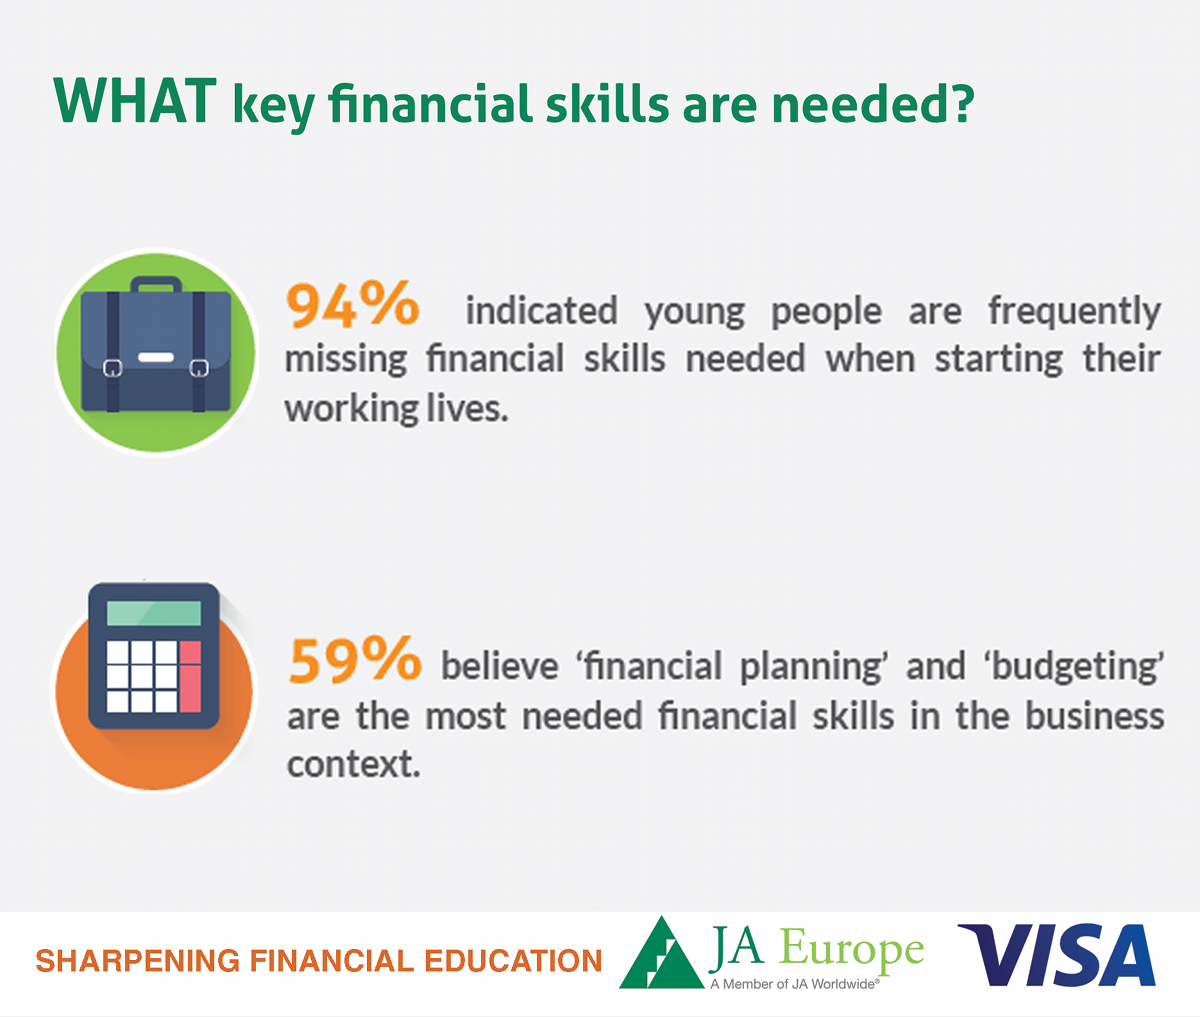 Financial Education Report Visa JA Europe What